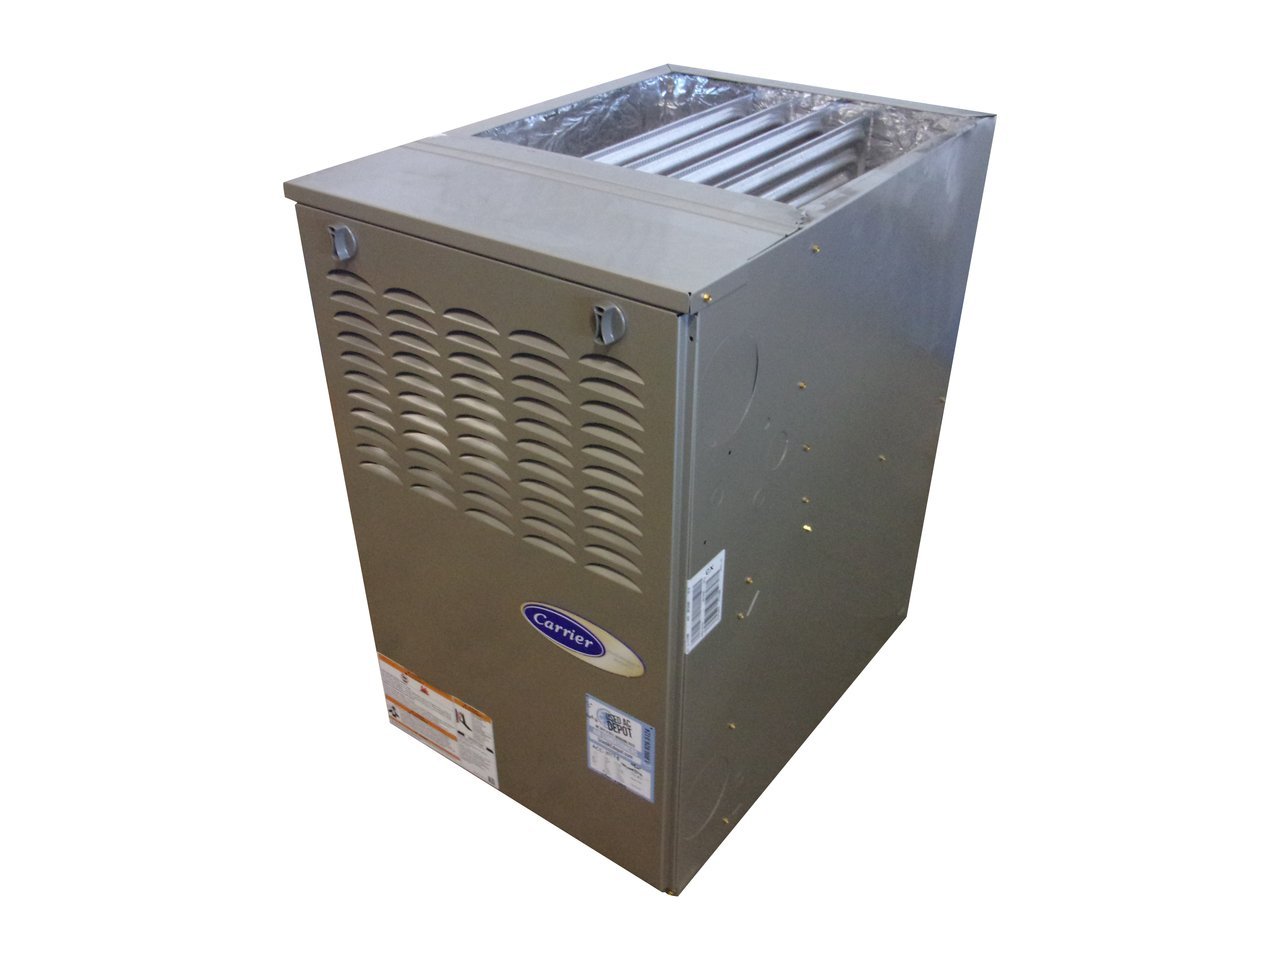 CARRIER ''Scratch & Dent'' Central Air Conditioner Furnace 58PHB090-1-16 ACC-10178